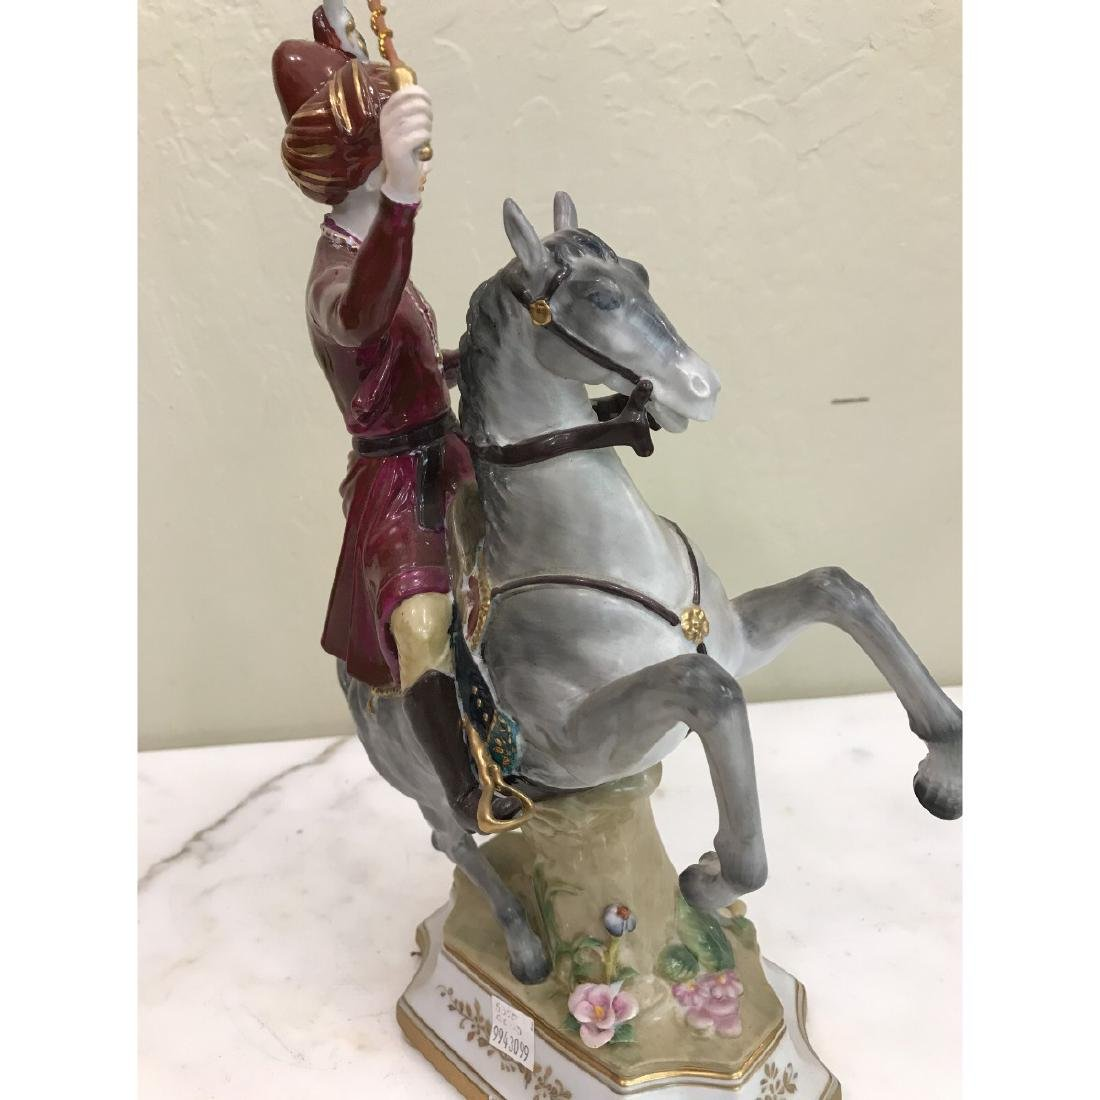 Porcelain Statue of Soldier on Horse - 5